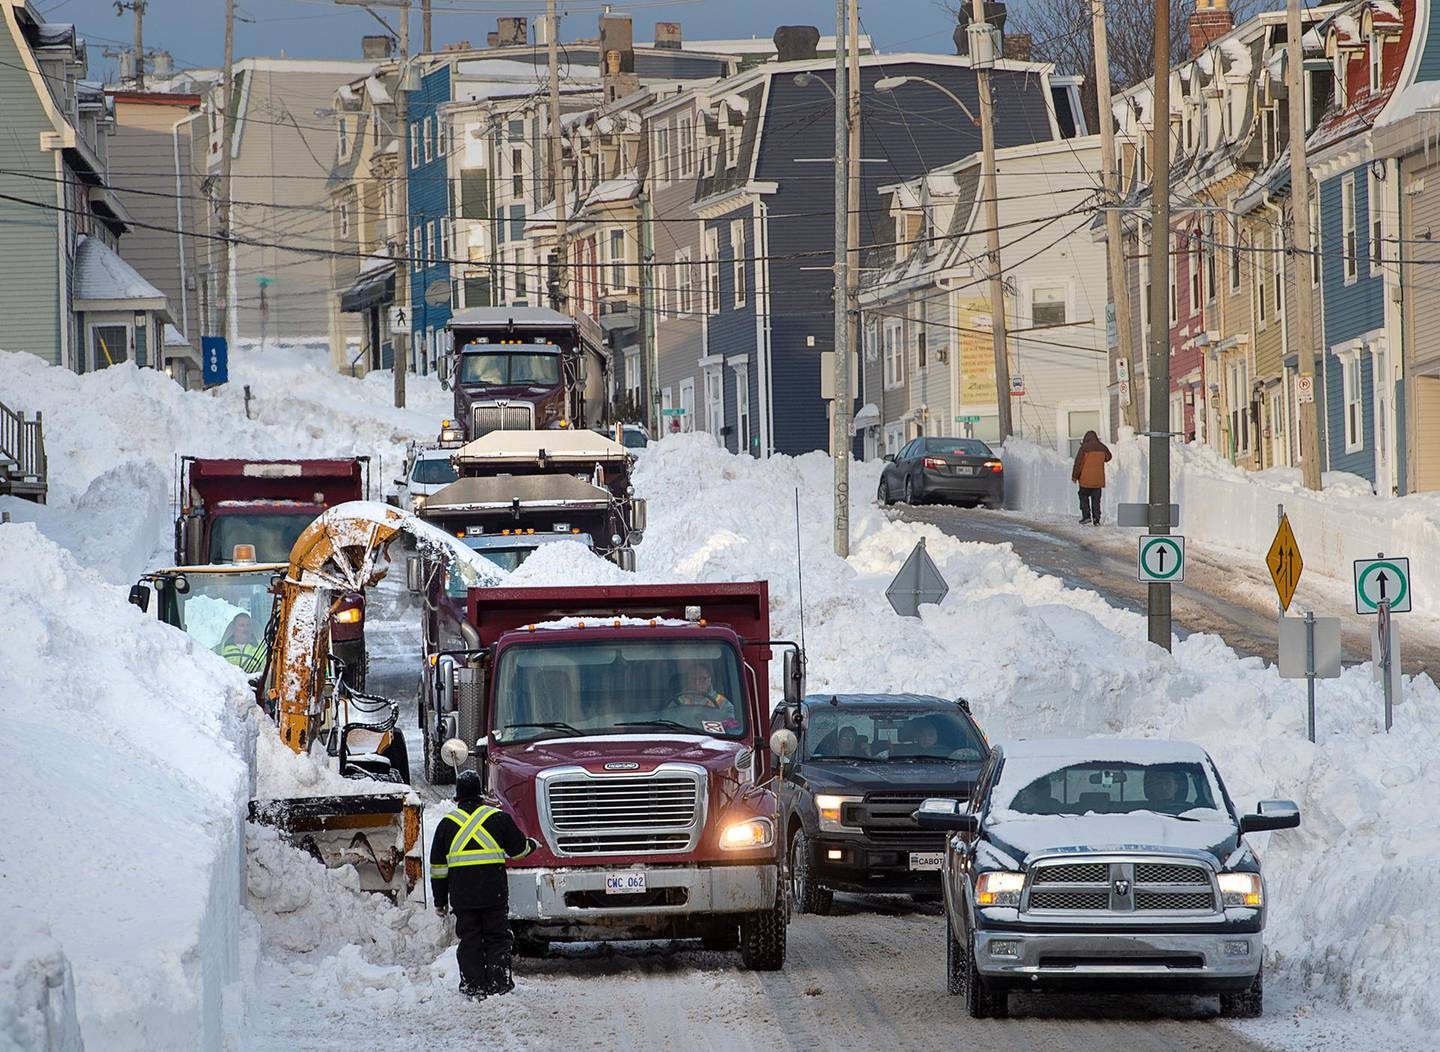 Workers continue to remove snow from the streets in St. John's, Newfoundland and Labrador, on Tuesday, Jan. 21, 2020. The state of emergency ordered by the City of St. John's continues for a fifth day, leaving most businesses closed and most vehicles off the roads in the aftermath of the major winter storm that hit the Newfoundland and Labrador capital. The city has allowed grocery and convenience stores to open for limited hours to let residents restock their food supply. (Andrew Vaughan/The Canadian Press via AP)